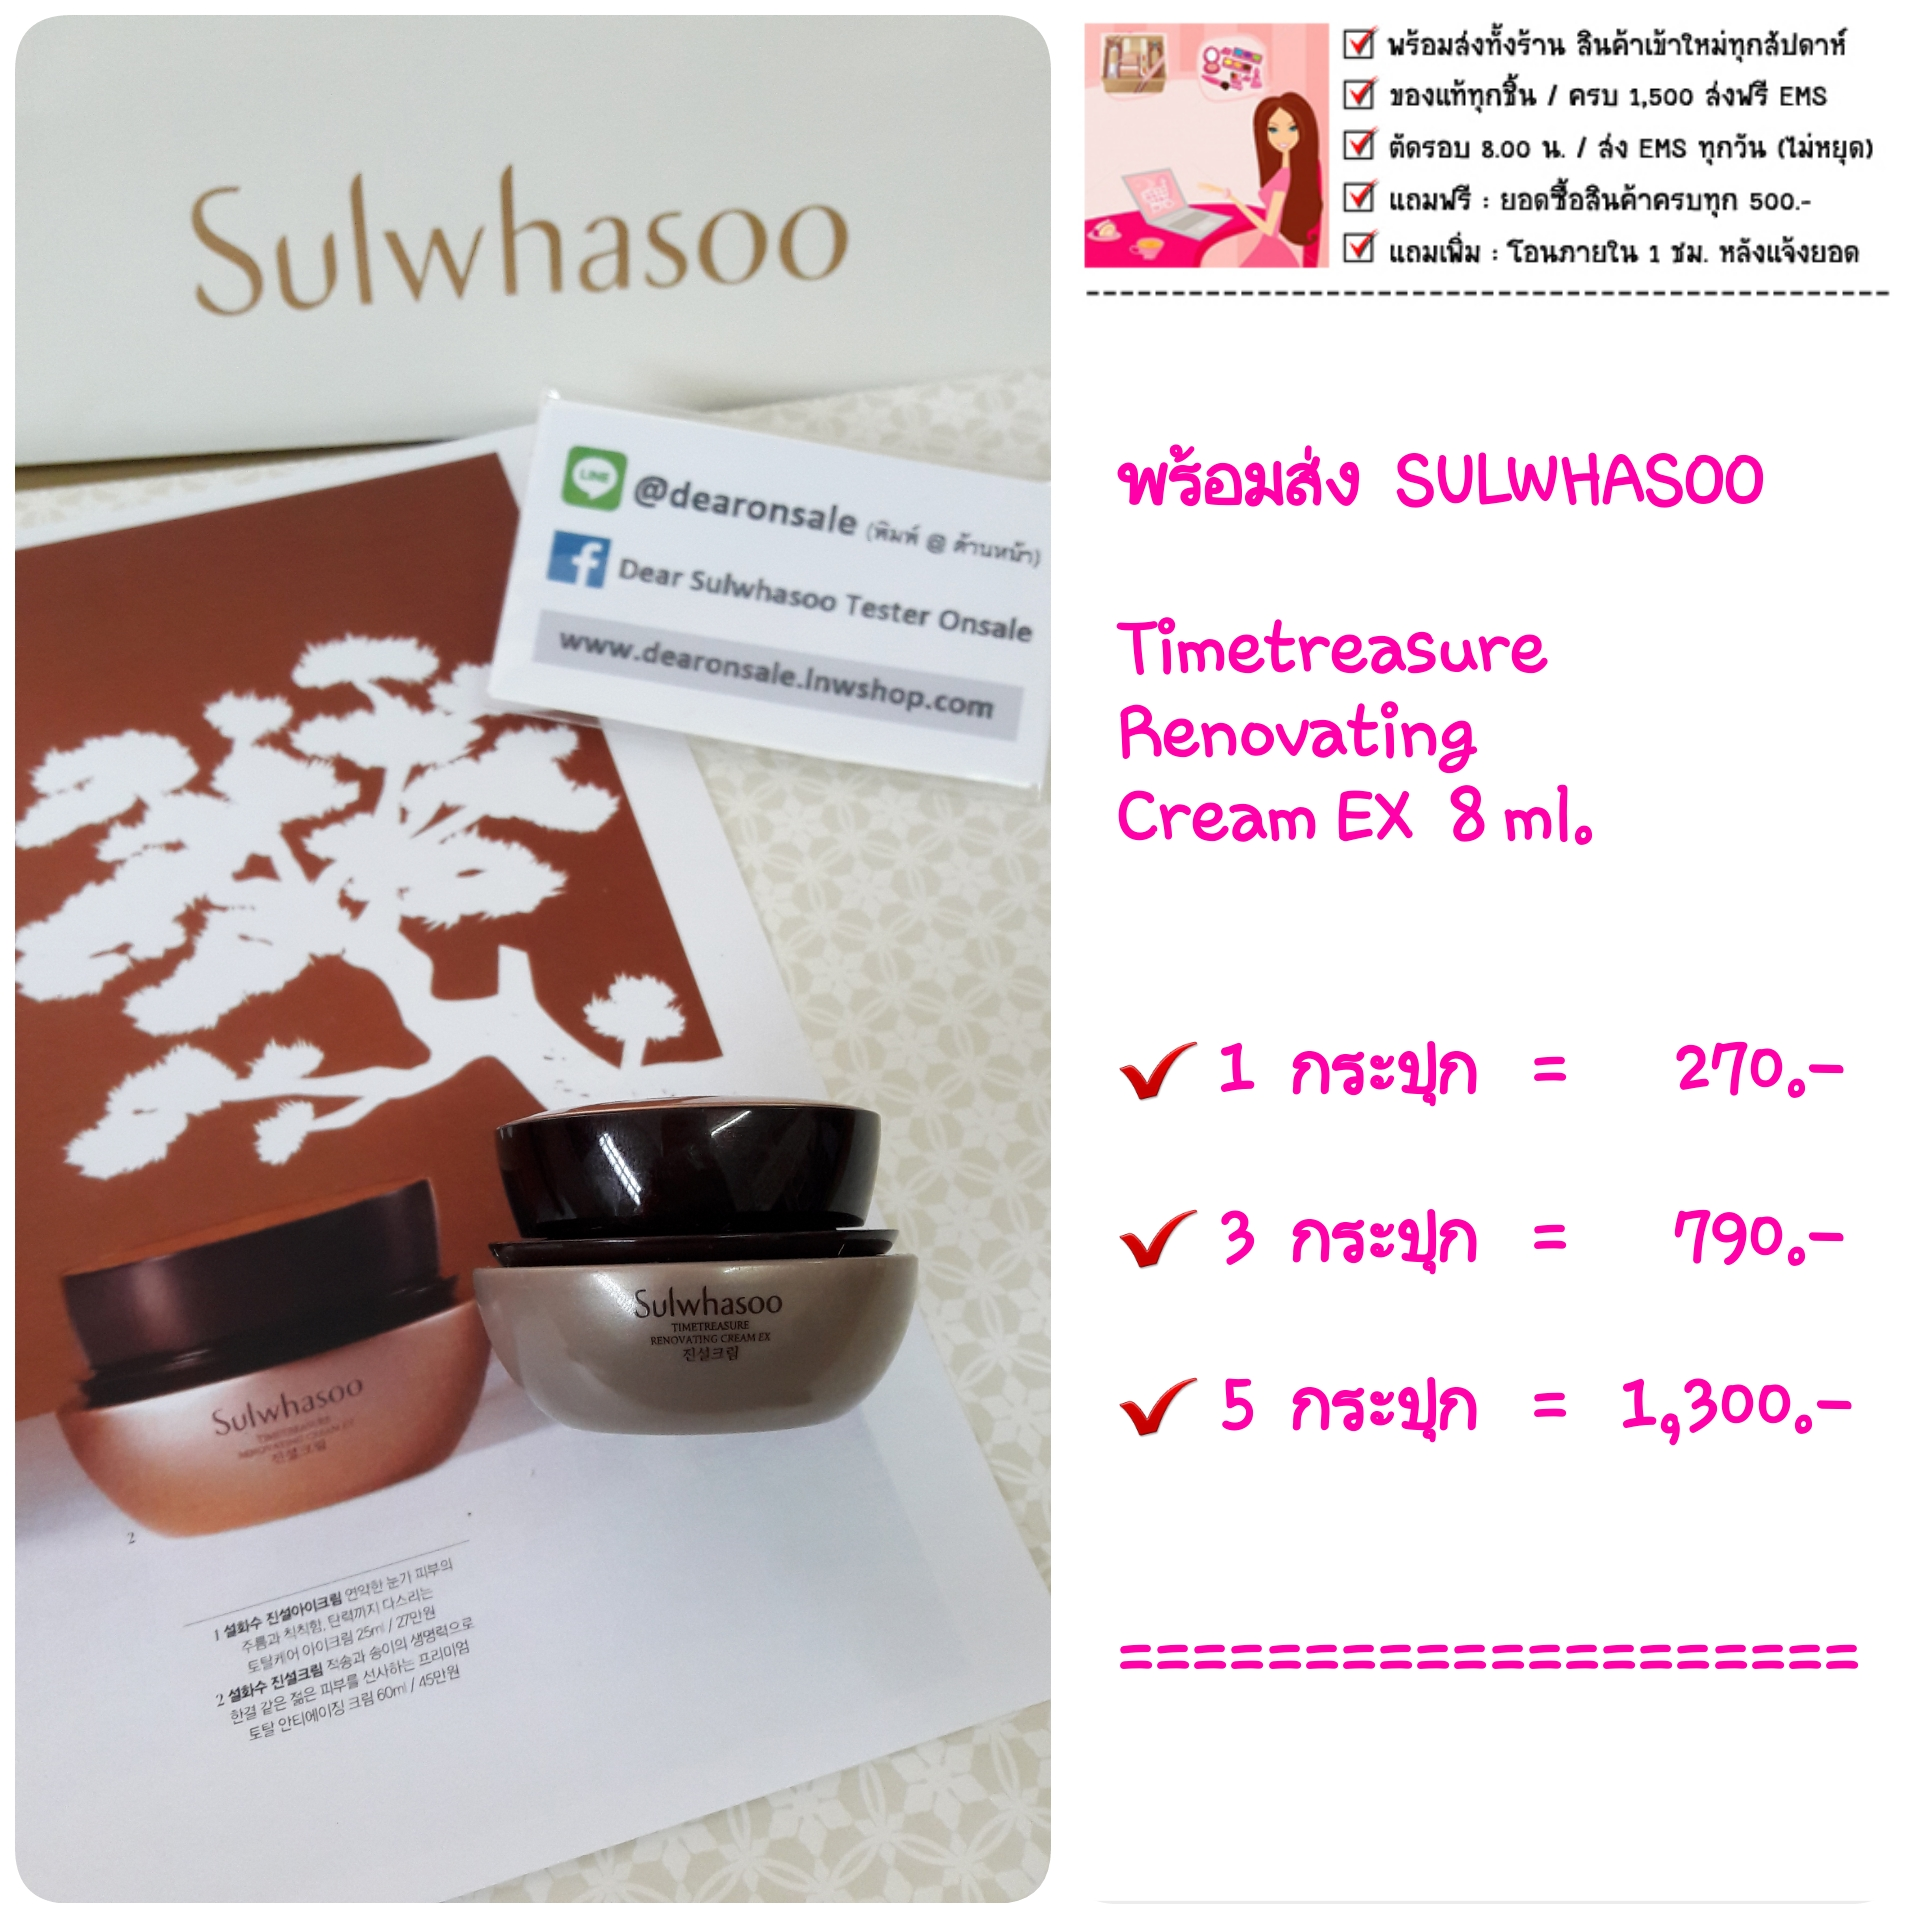 Timetreasure Cream Ex 8 Ml Dear Sulwhasoo Time Treasure Renovating 8ml